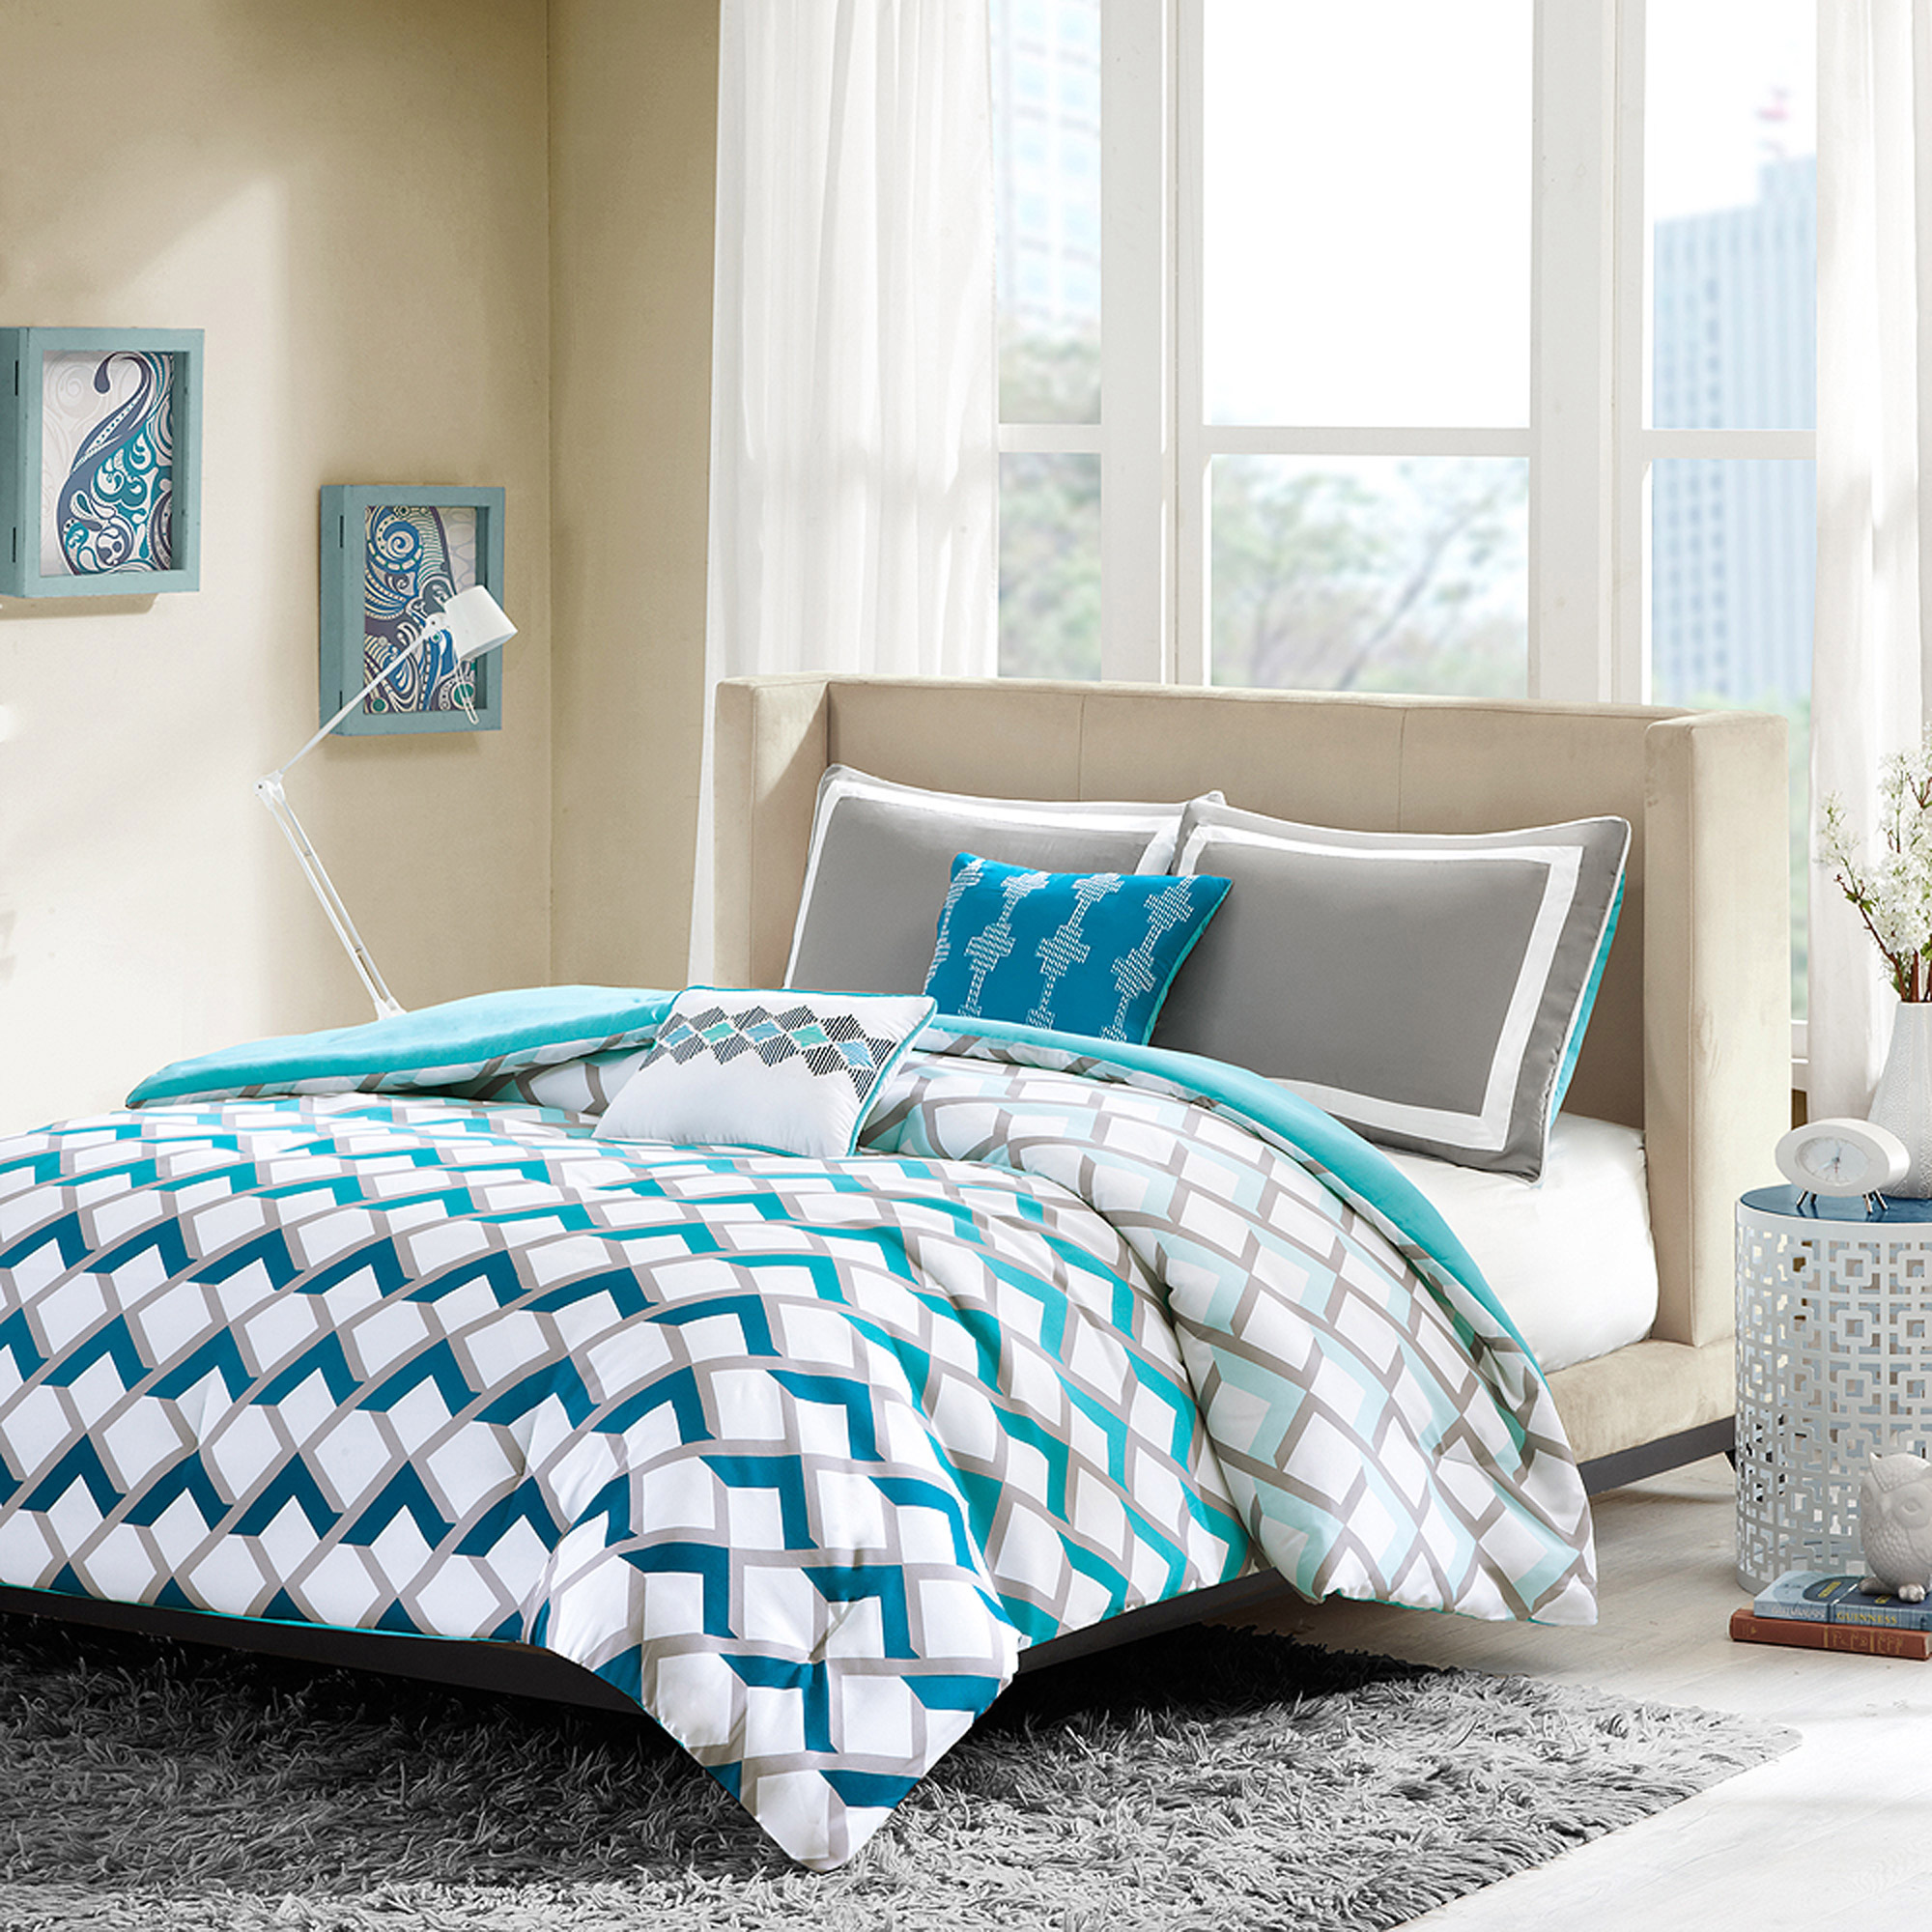 Home Essence Apartment Luna Bedding Comforter Set